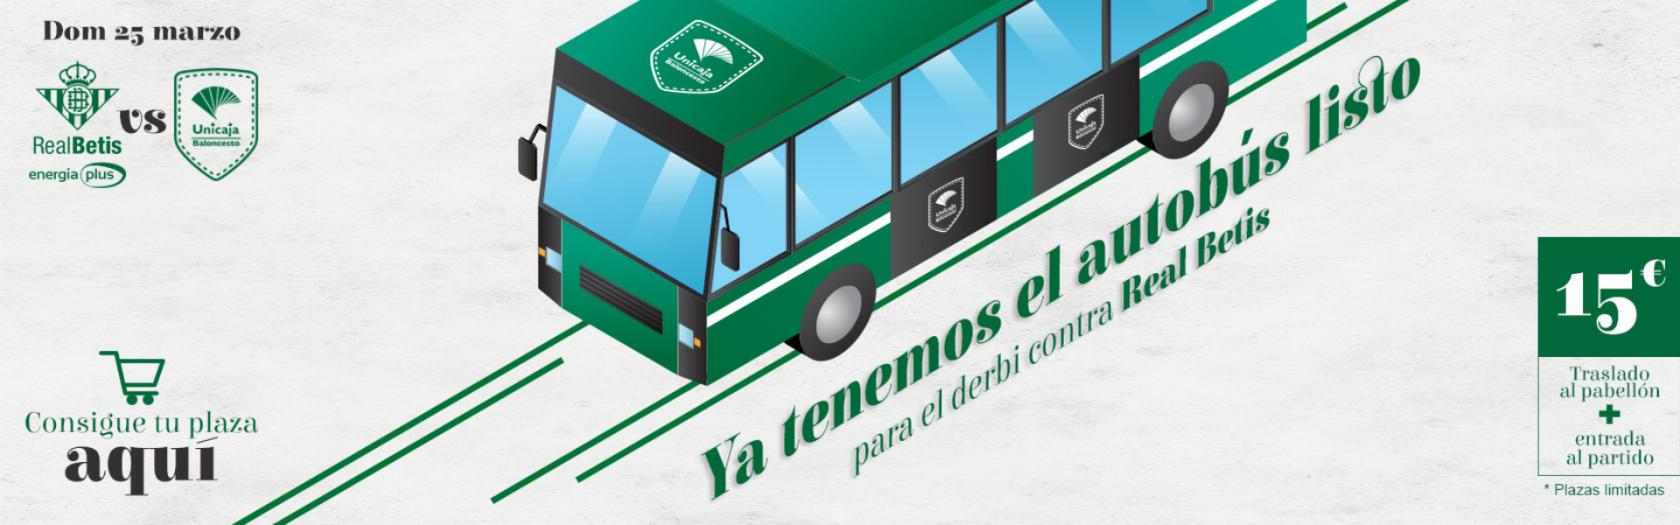 Travel to Seville to watch the game Betis - Unicaja